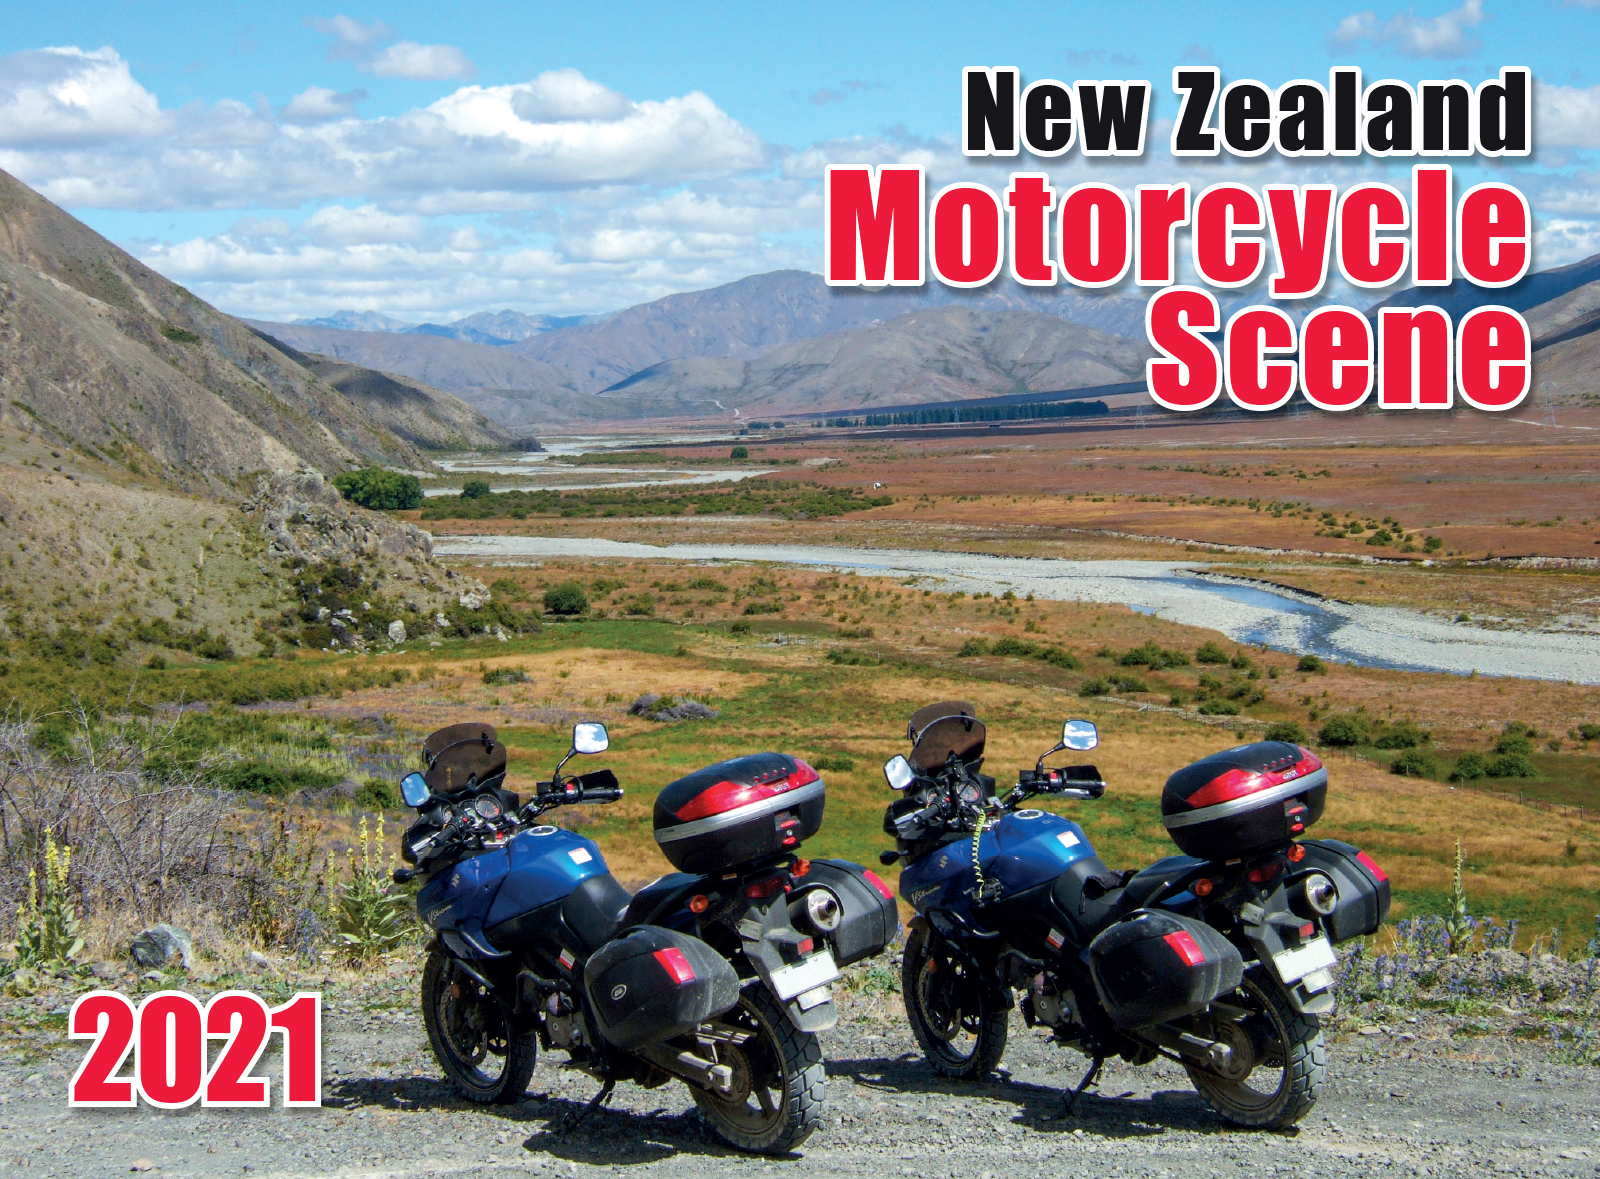 New Zealand Motorcycle Scene 2021